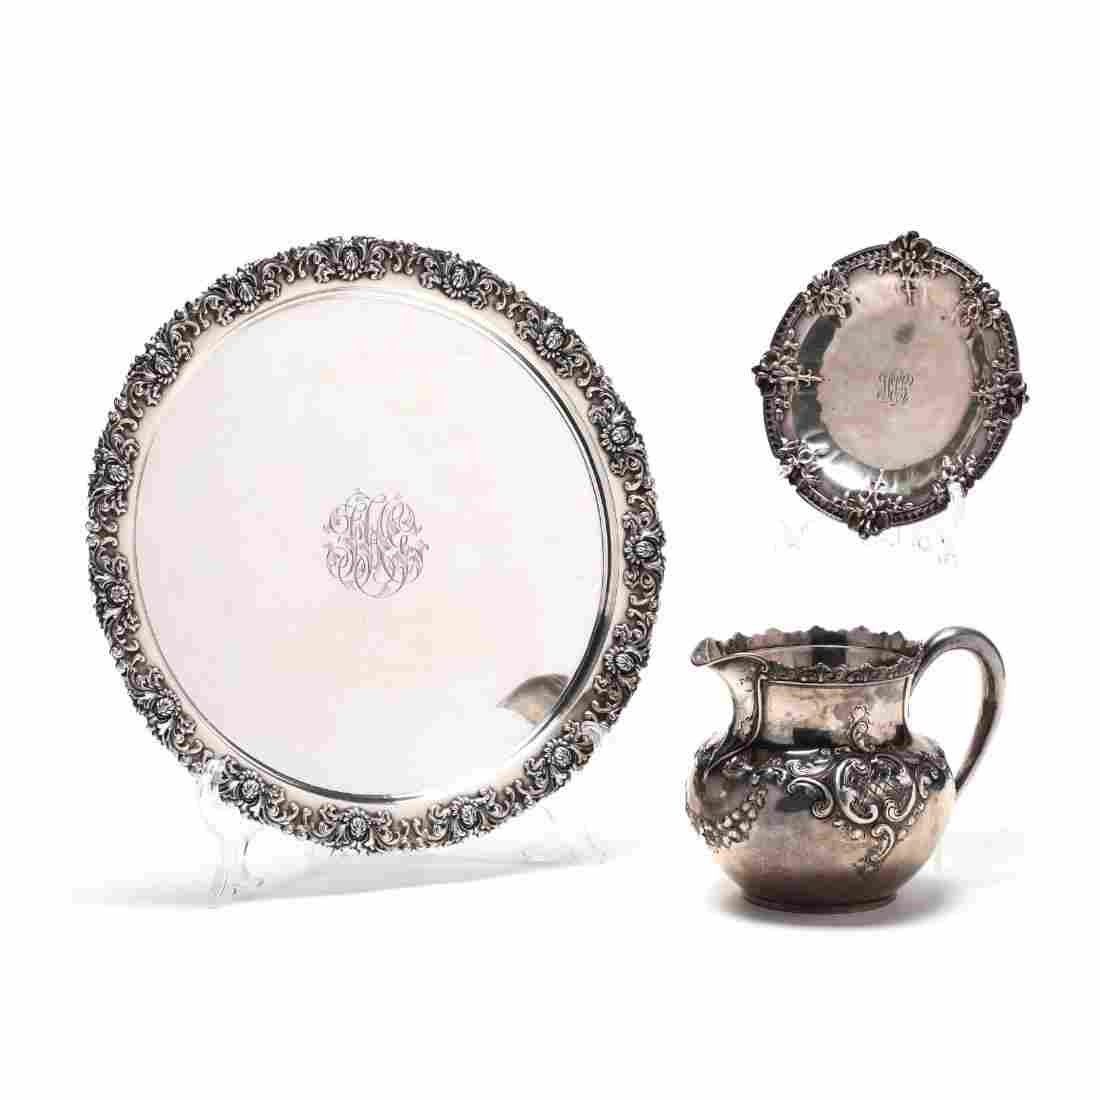 Three Antique Sterling Silver Tablewares, Tiffany & Co.